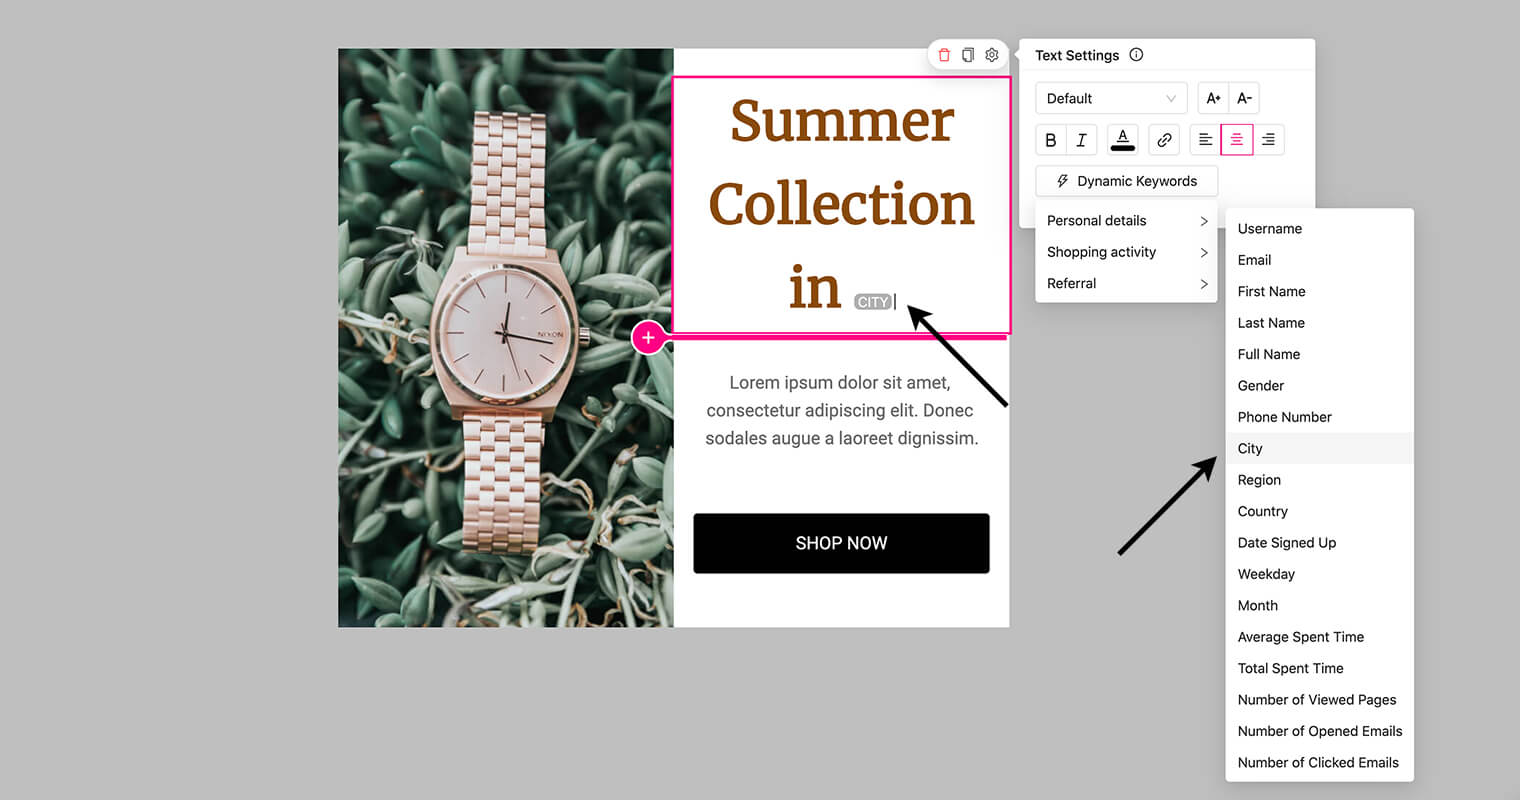 personalize content with dynamic keywords - Personalize email and popup content with the recipient's geolocational details